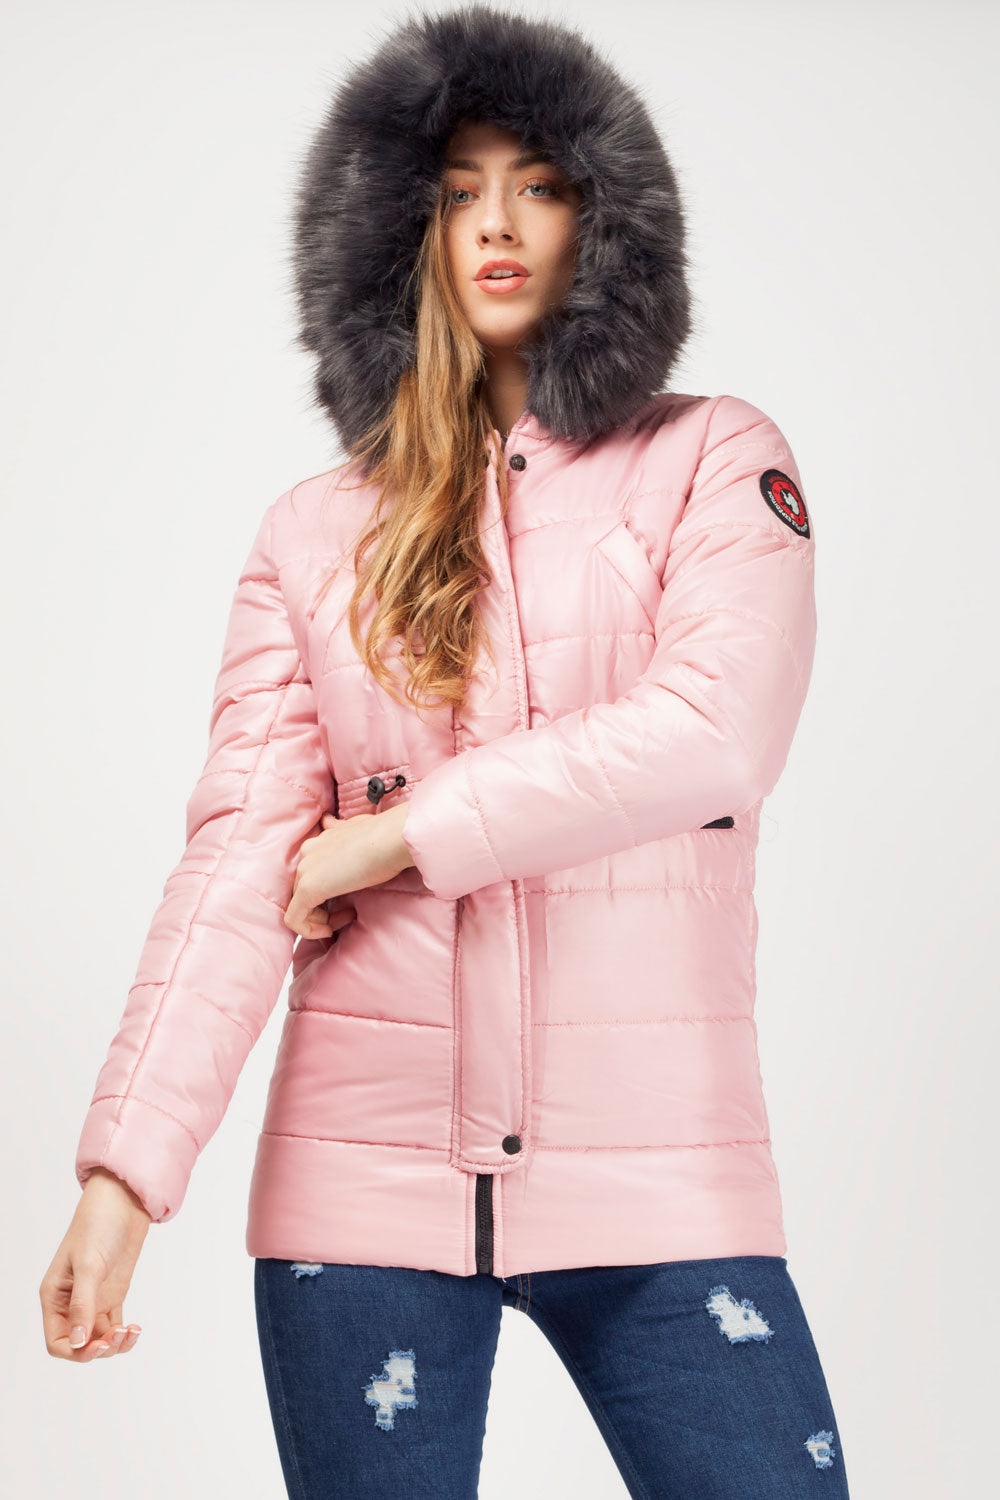 pink jackets for women